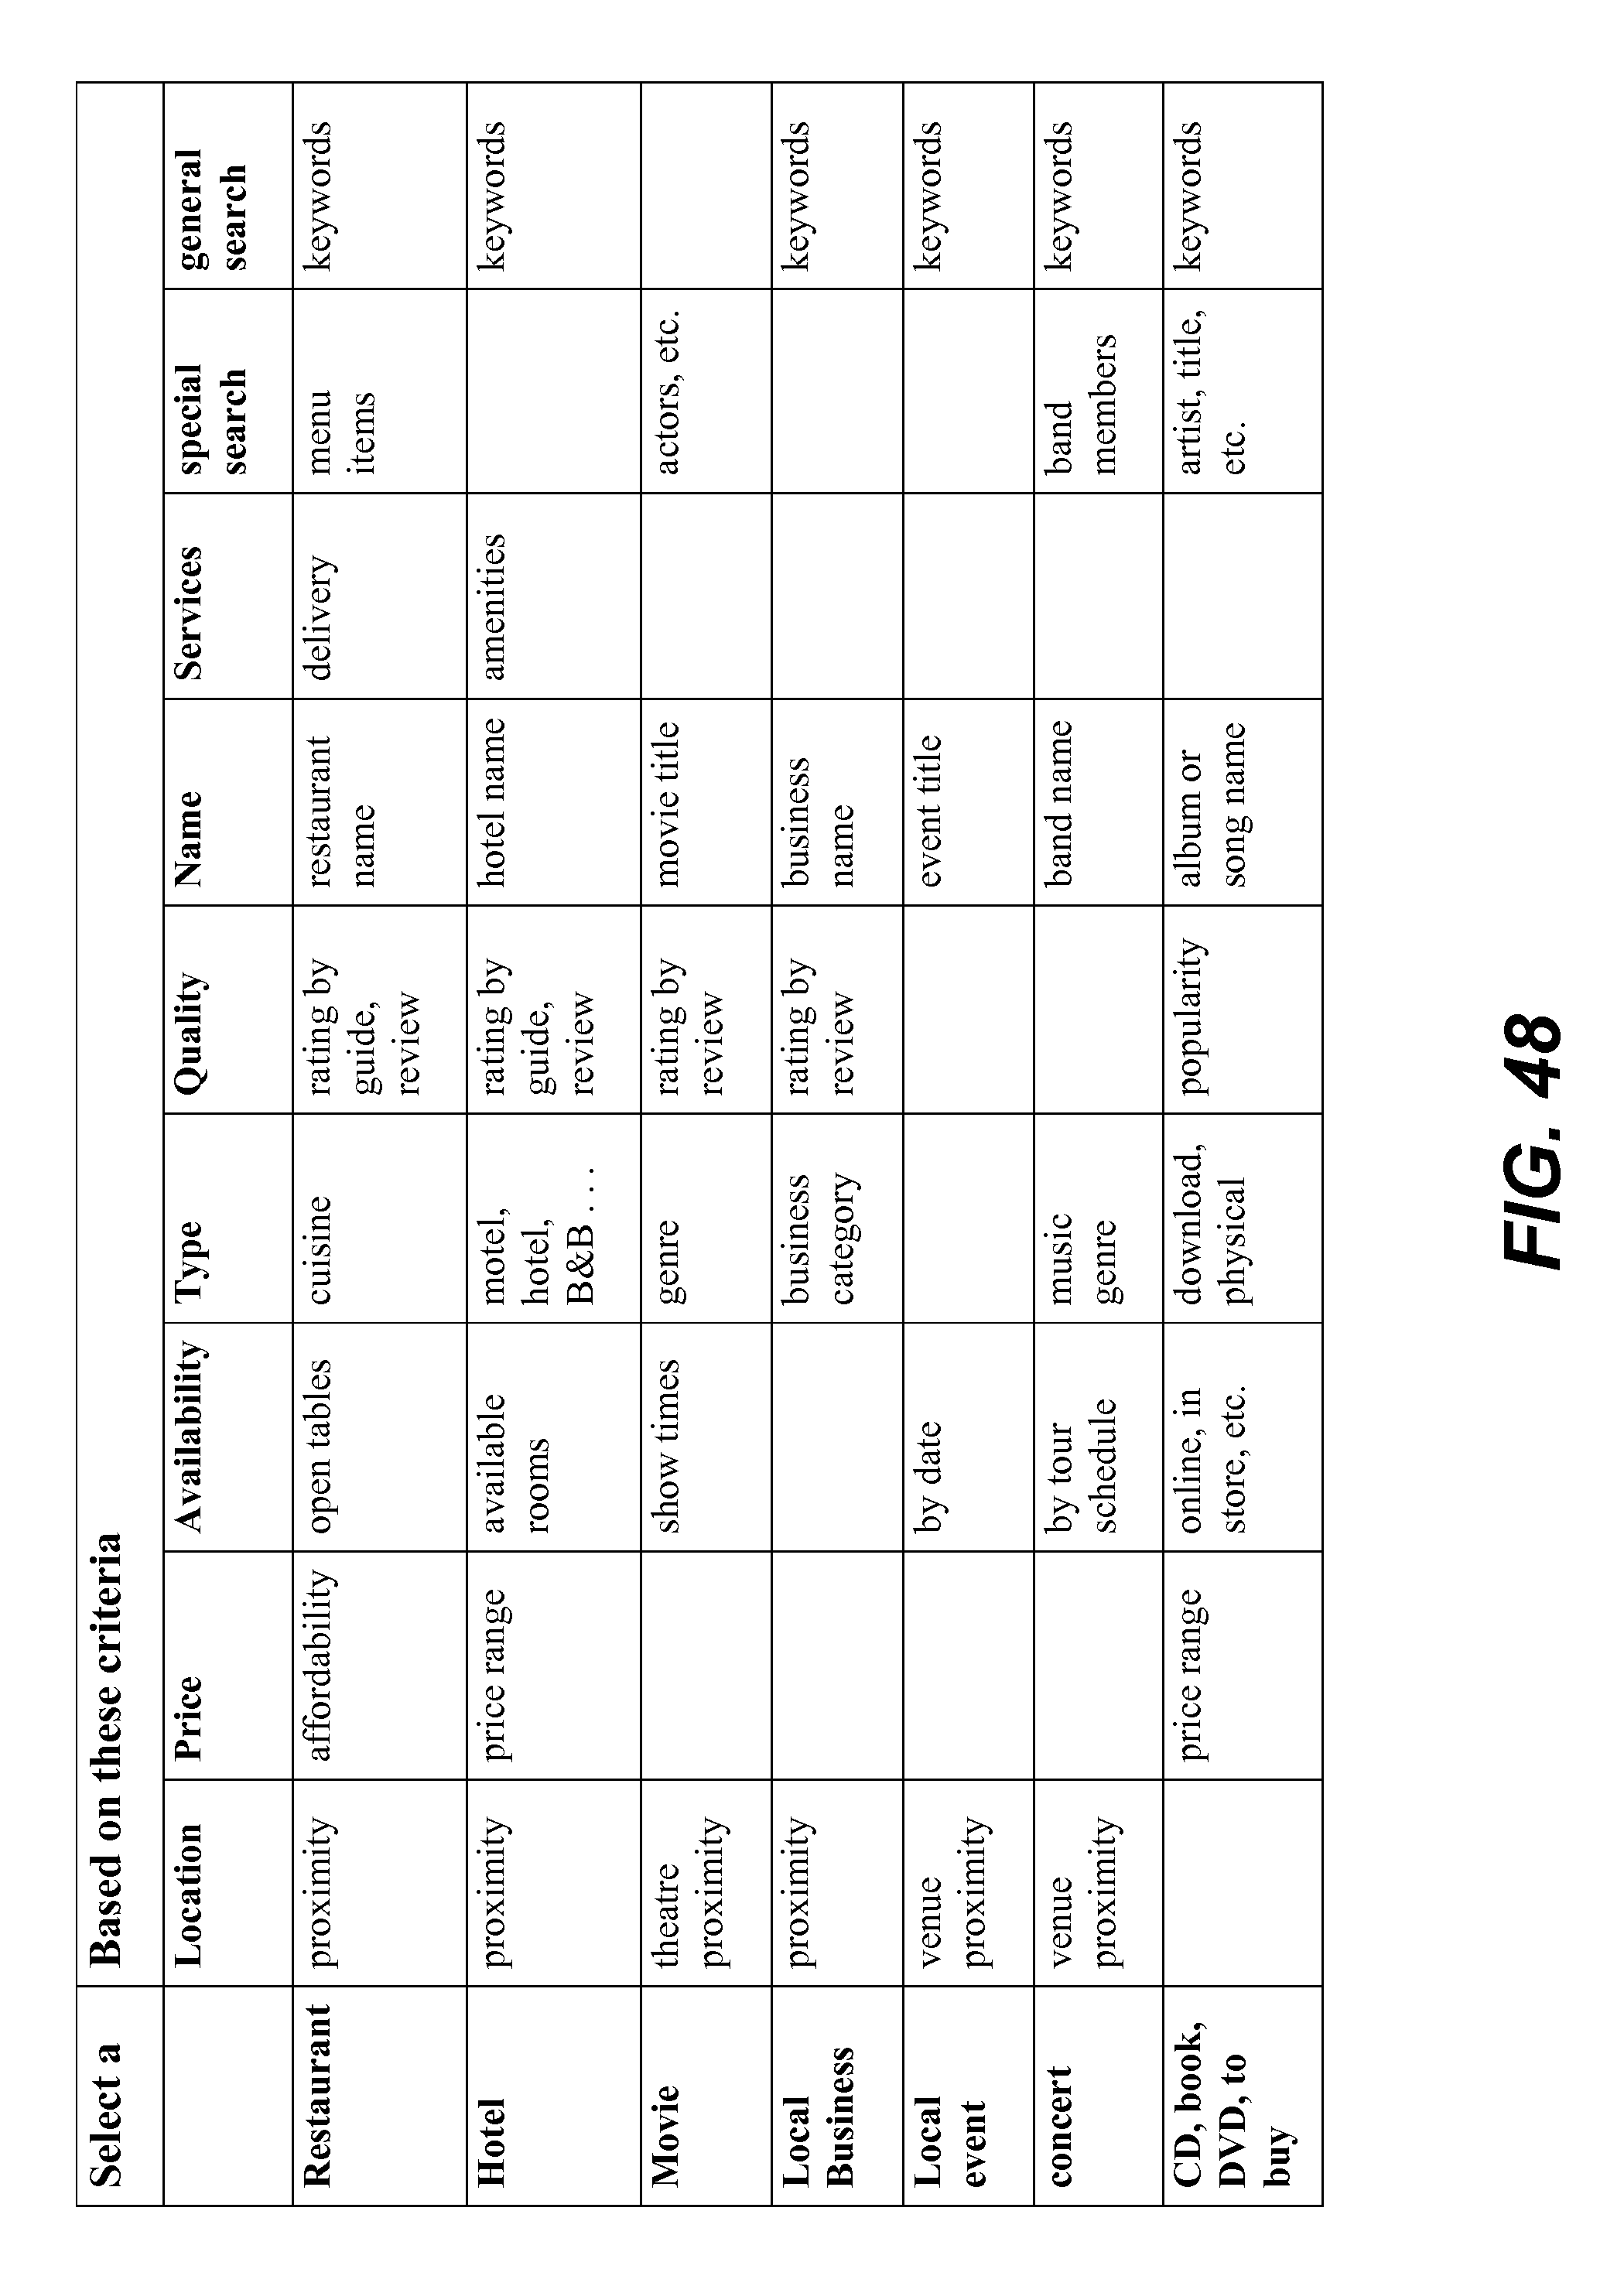 Us8892446b2 Service Orchestration For Intelligent Automated